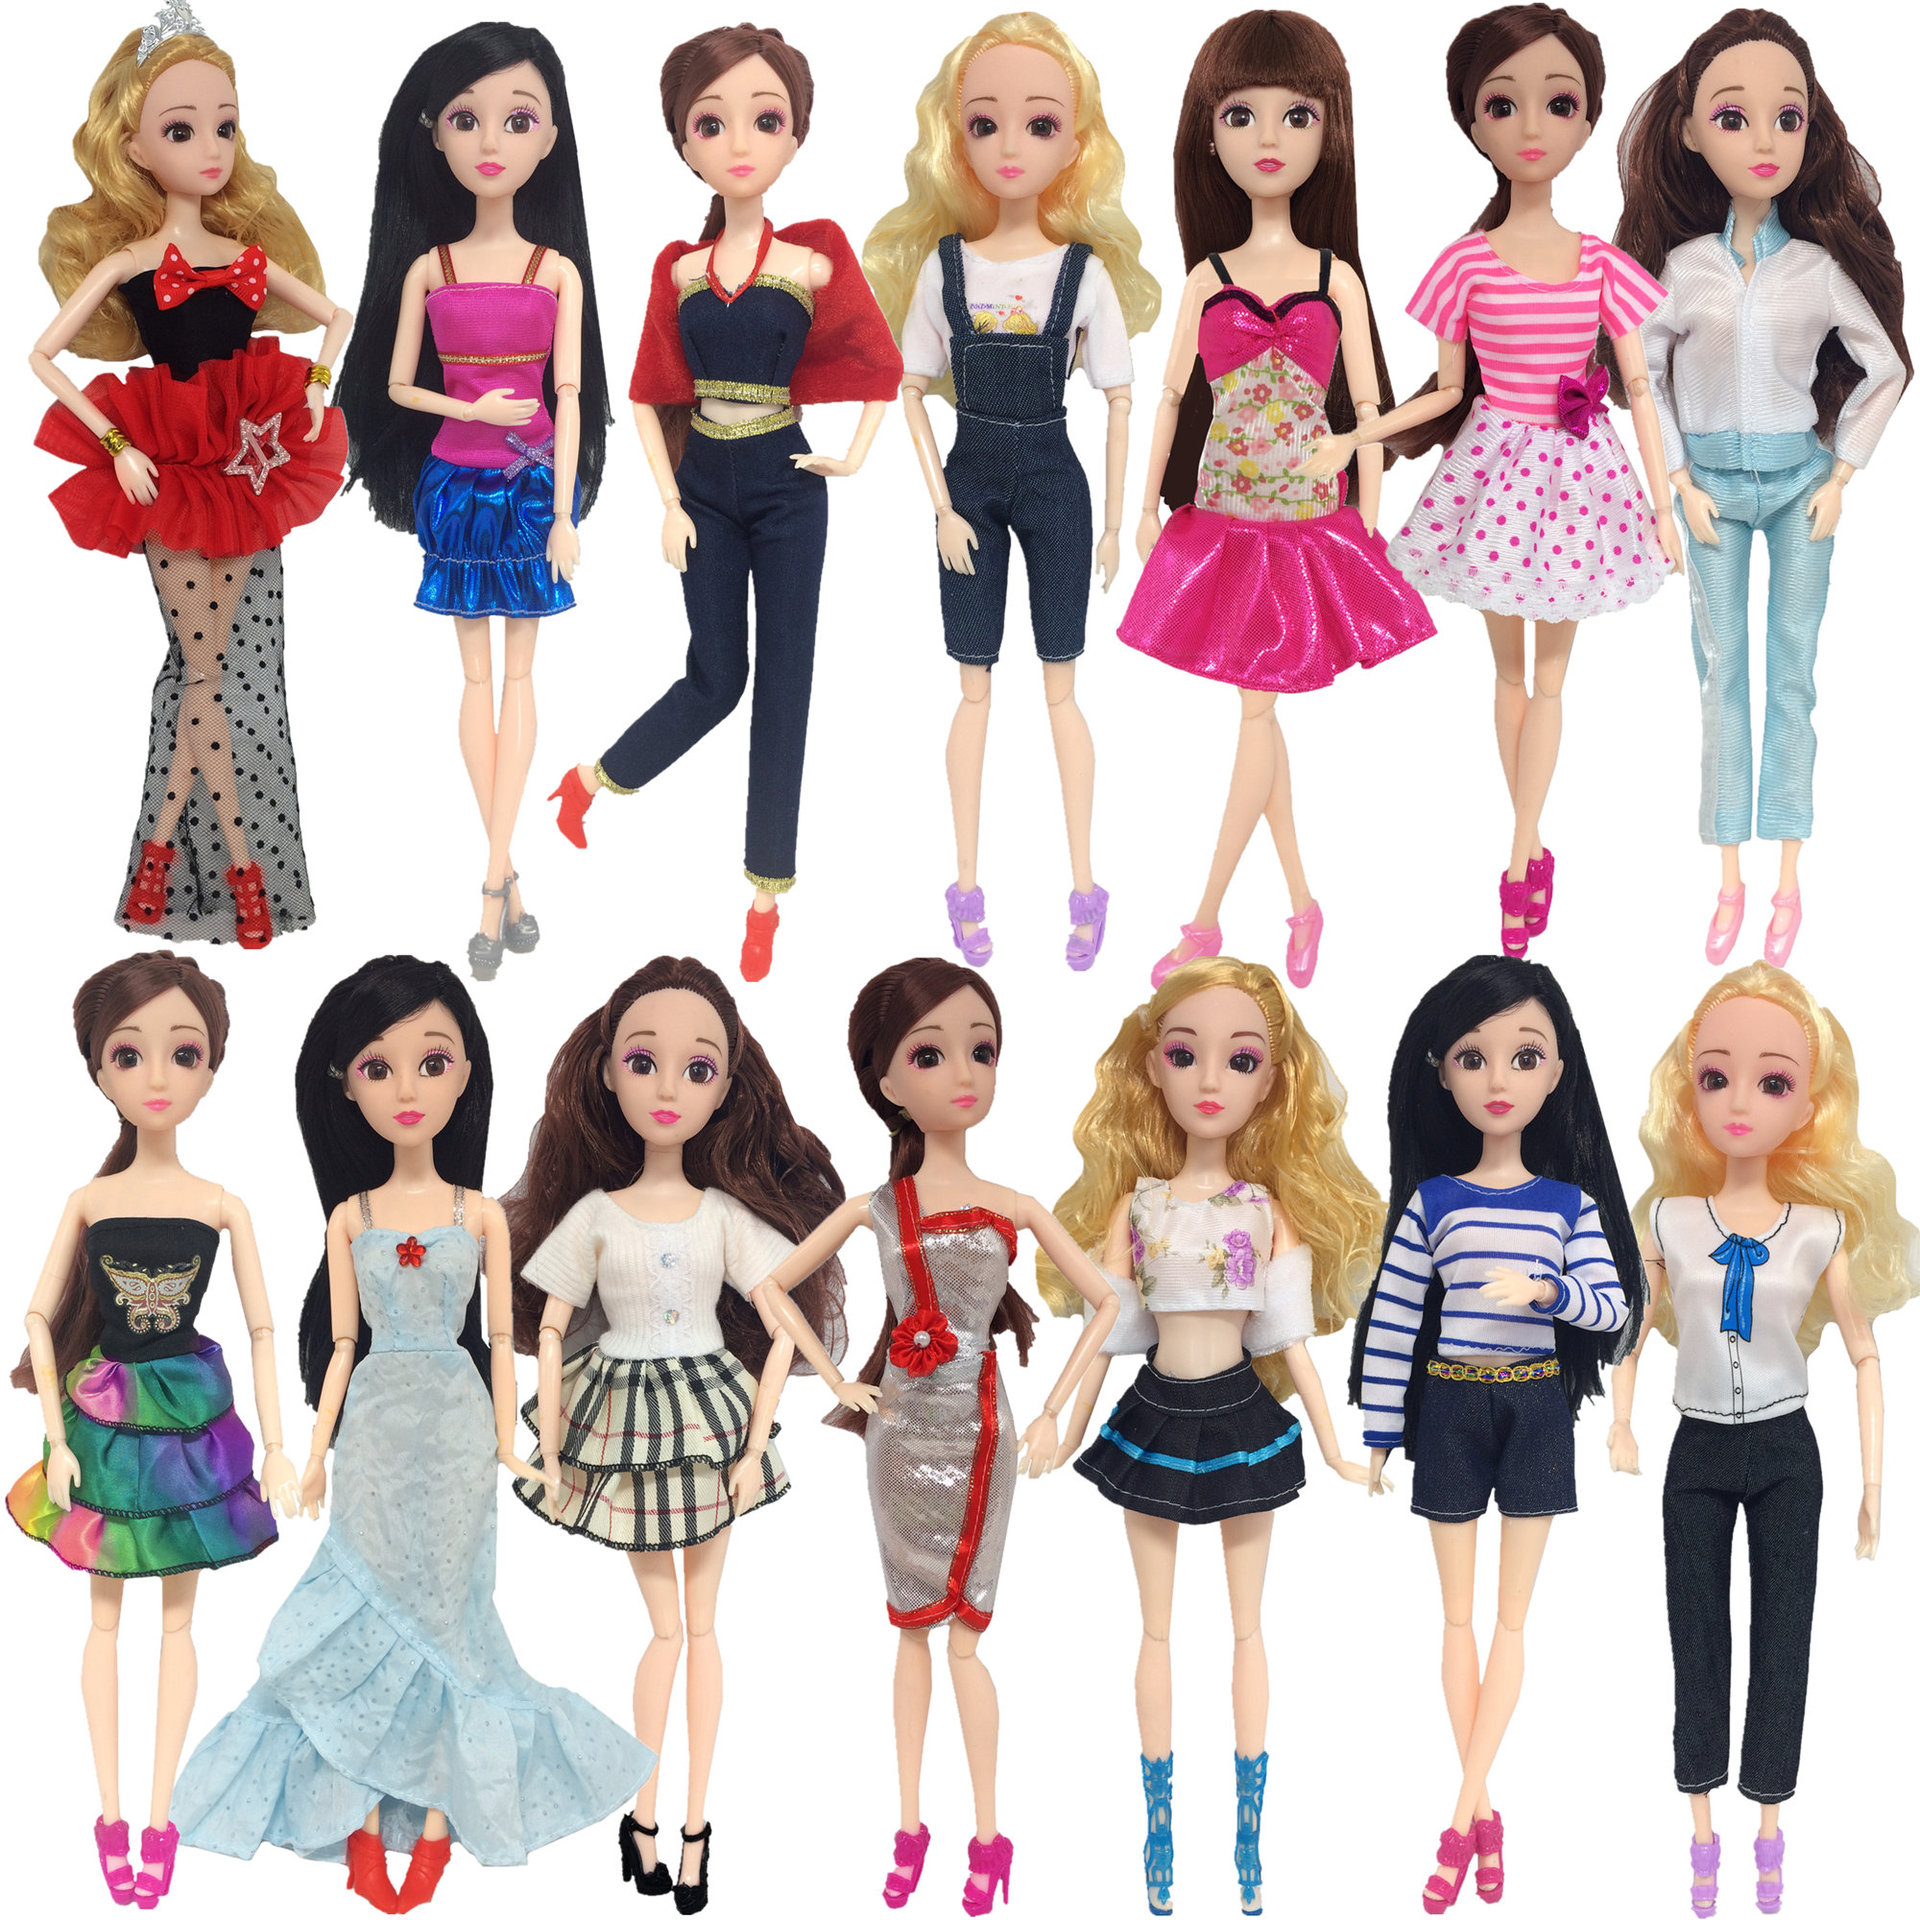 30cm BJD Doll Fashion Doll Clothes Joint Movement Body Handmade Gown Grid Skirt Daily Casual Suit Doll Accessories Toys For Girl